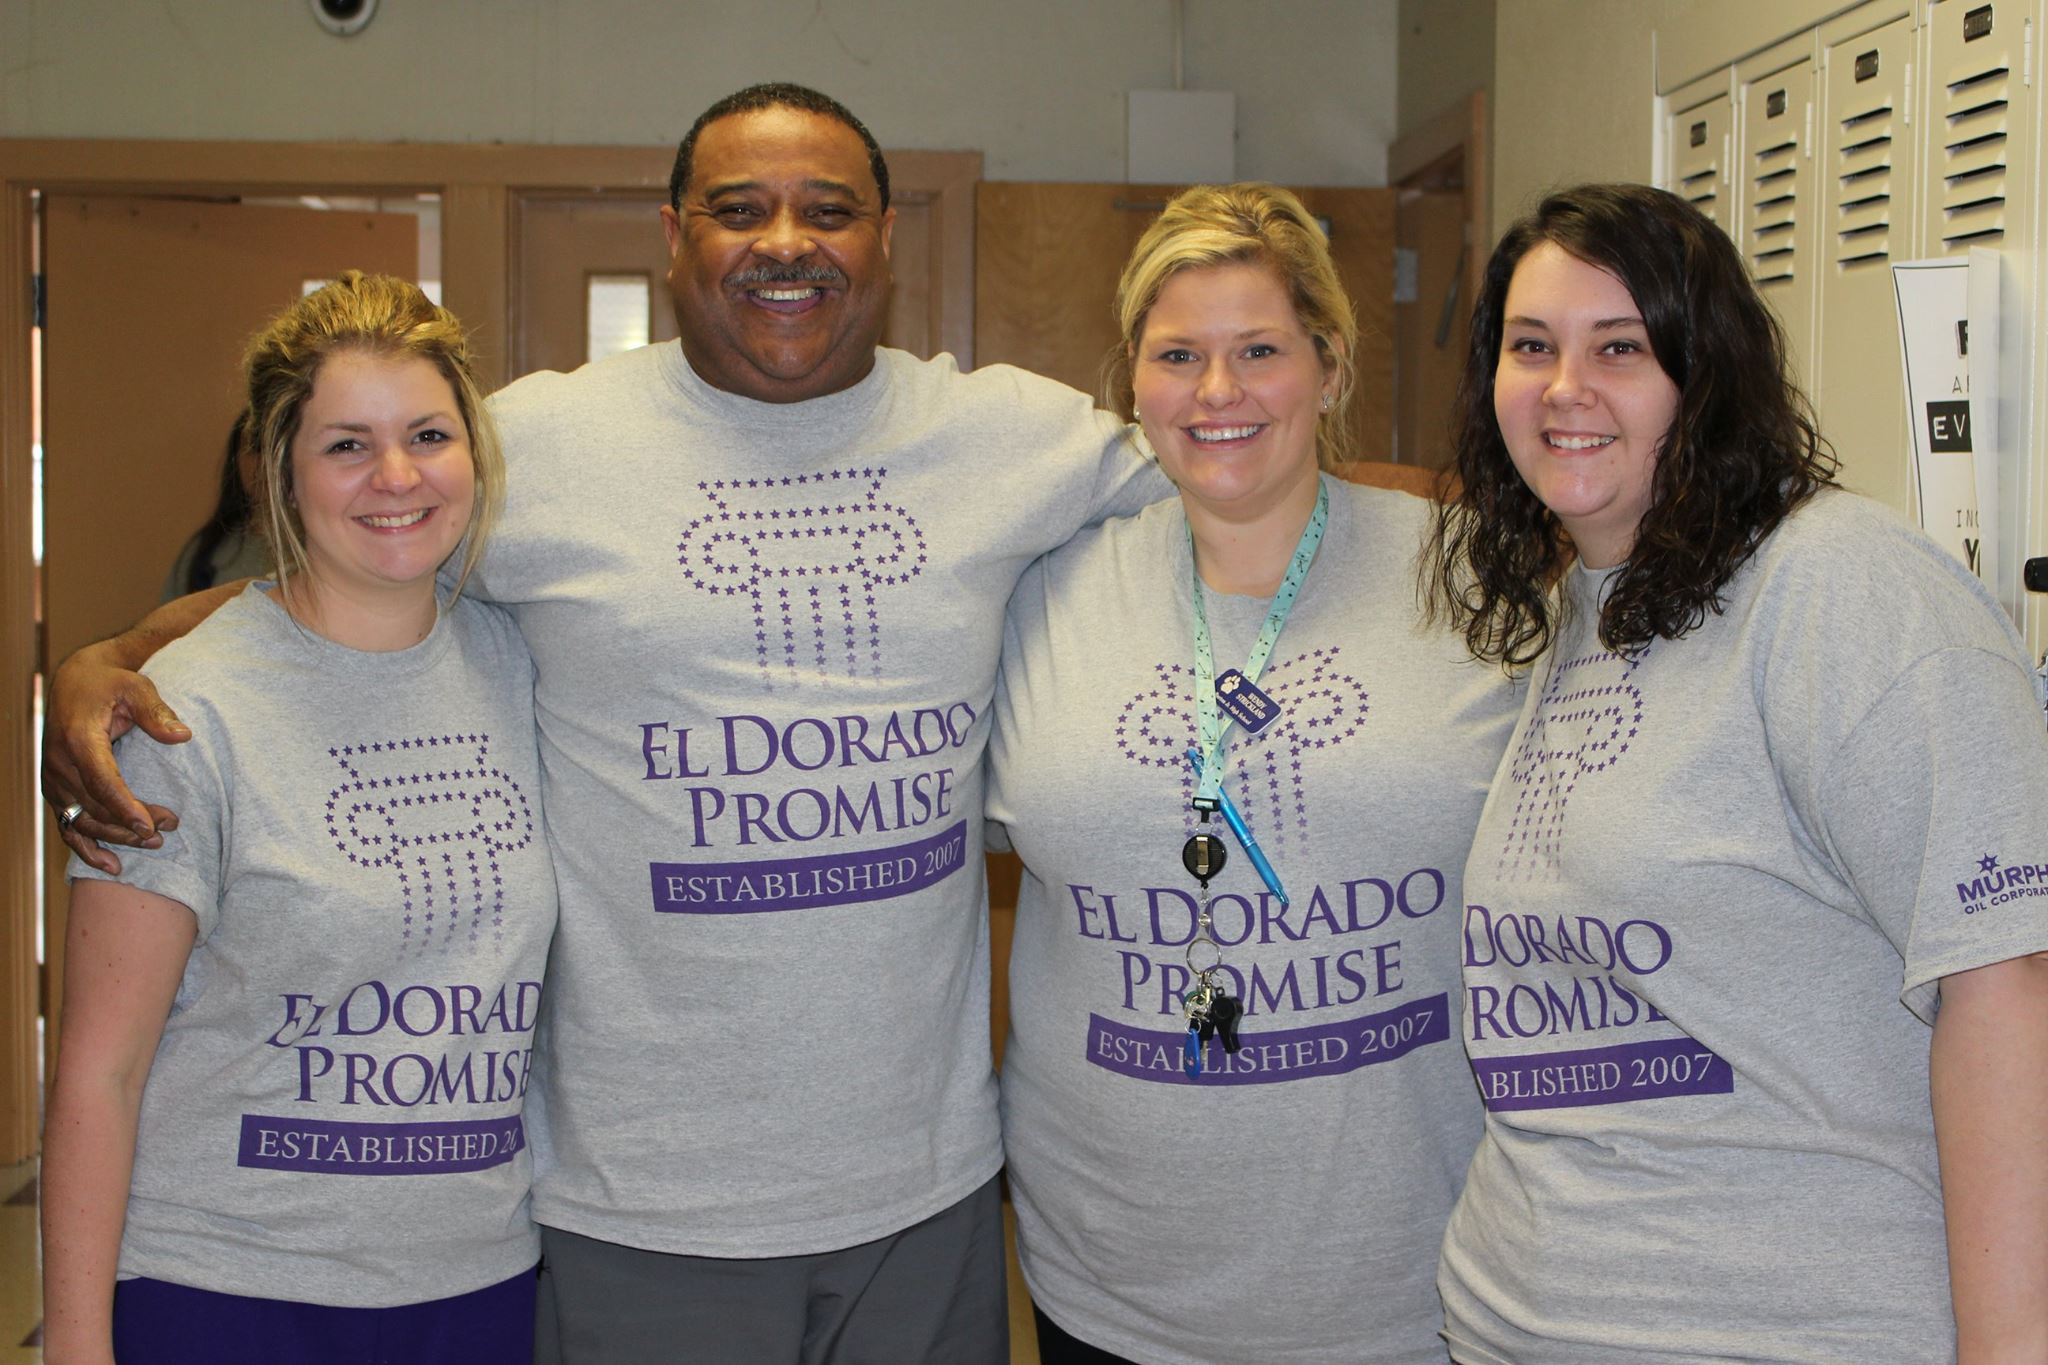 A photo of El Dorado Promise staff.